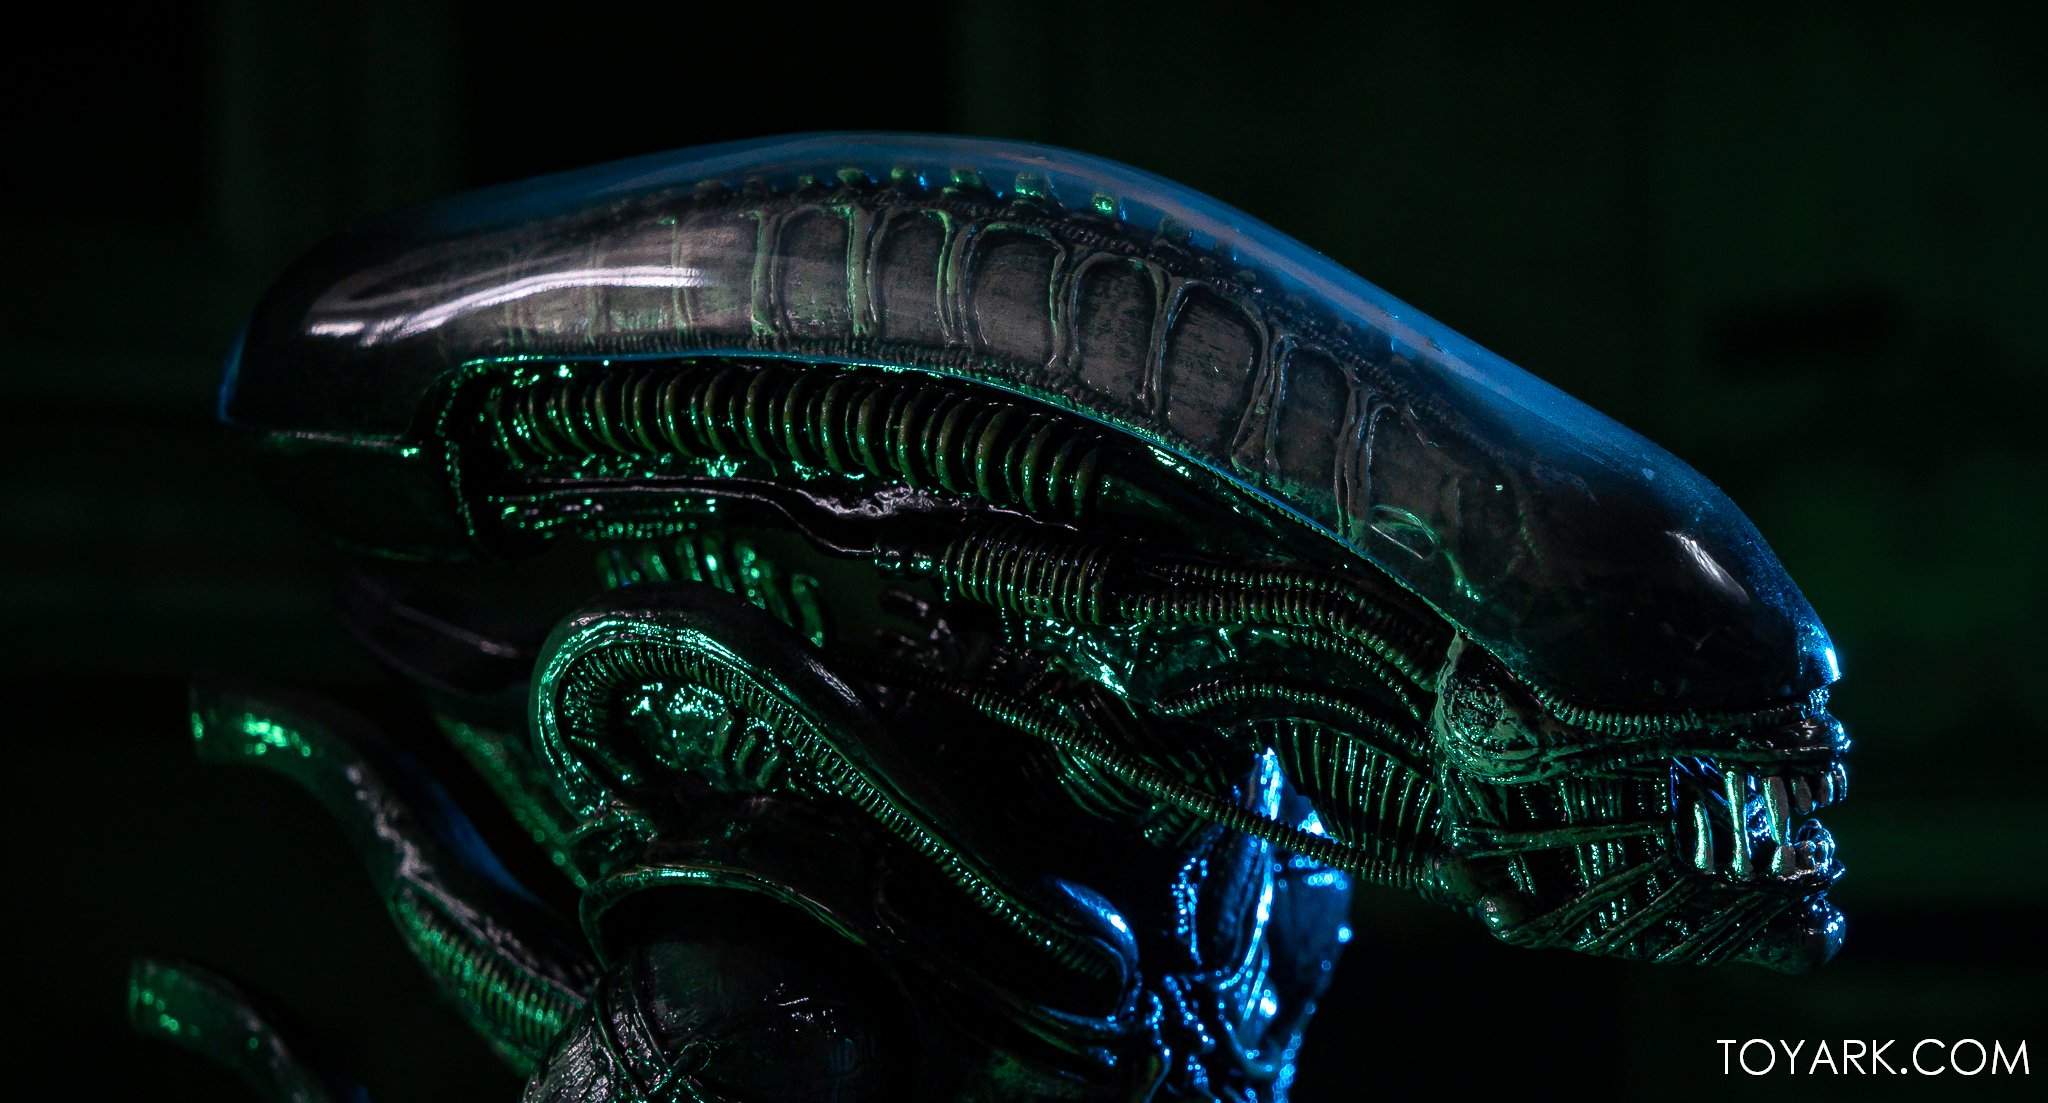 https://news.toyark.com/wp-content/uploads/sites/4/2020/01/NECA-Big-Chap-Alien-Ultimate-047.jpg